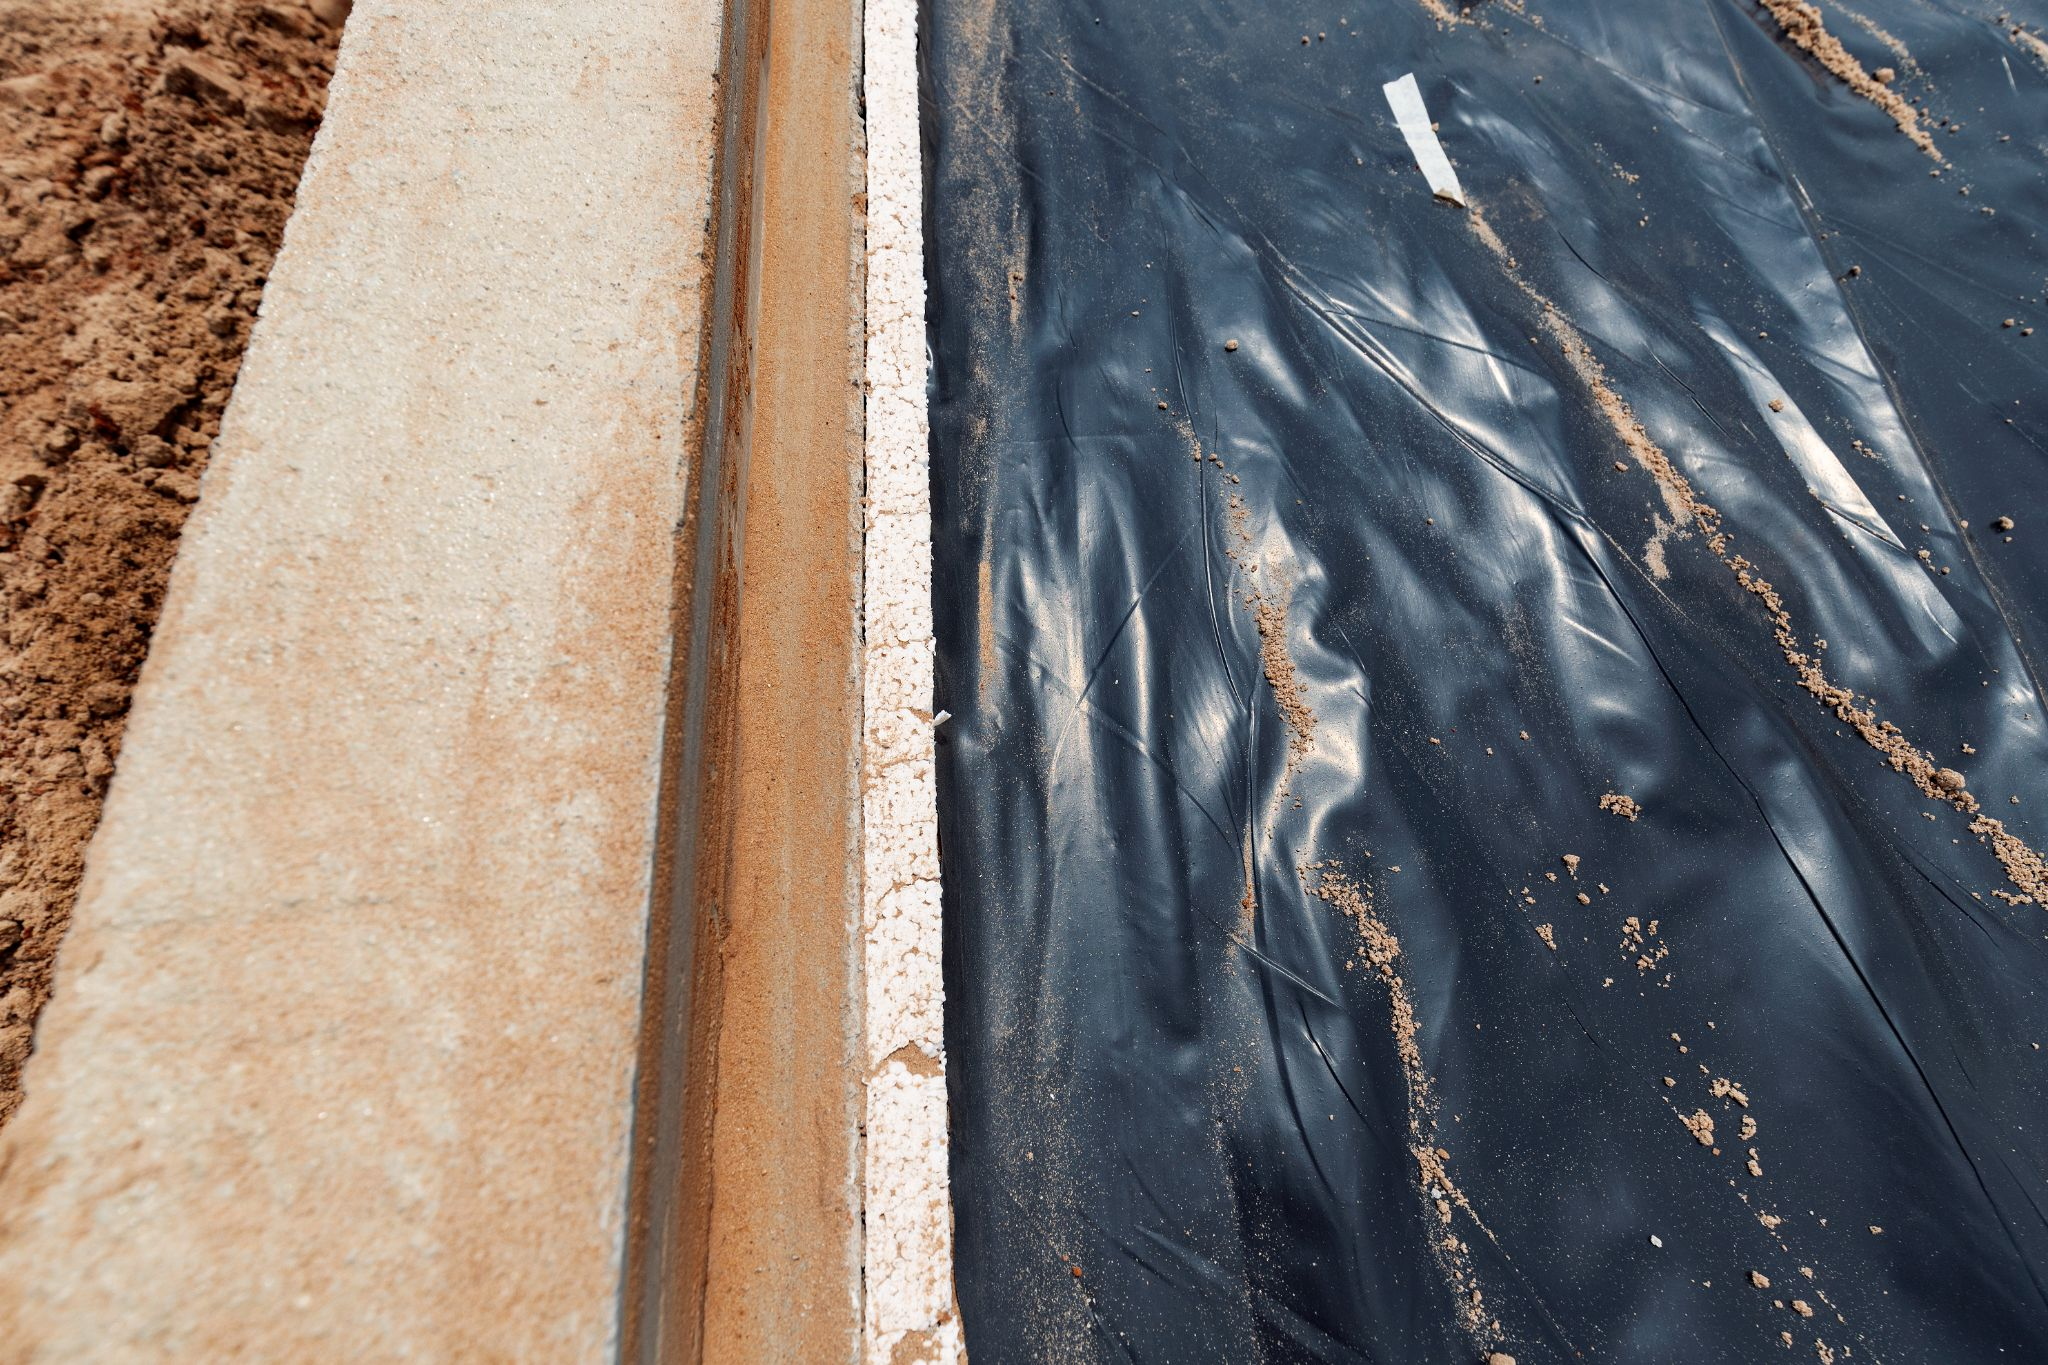 A foundation with a black tarp on it to protect the foundation